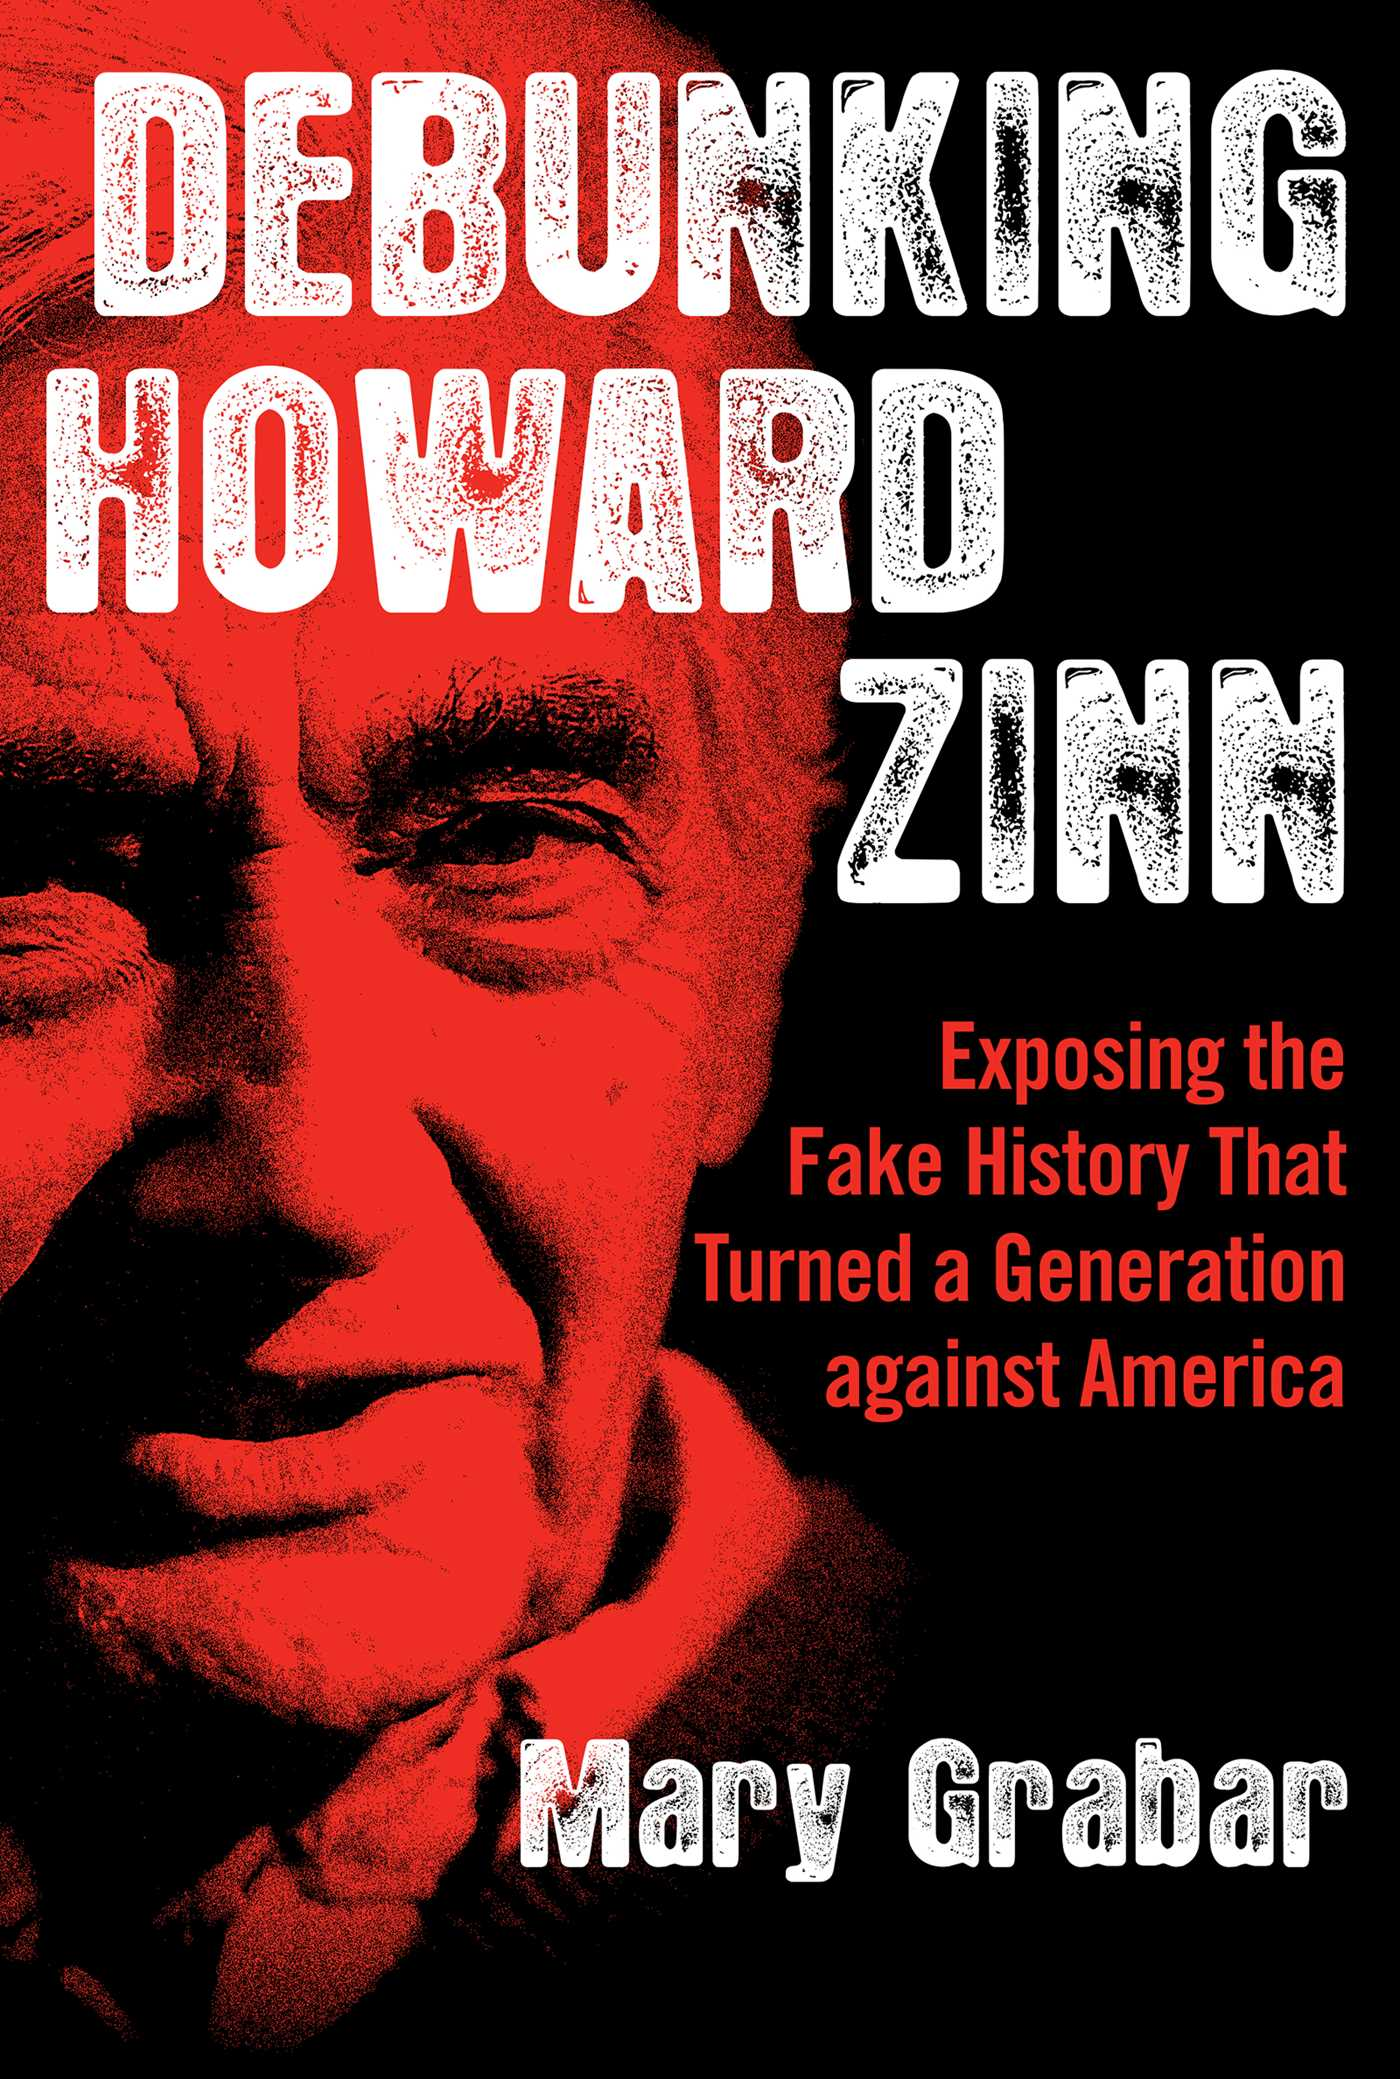 Exposing the Fake History That Turned a Generation against America